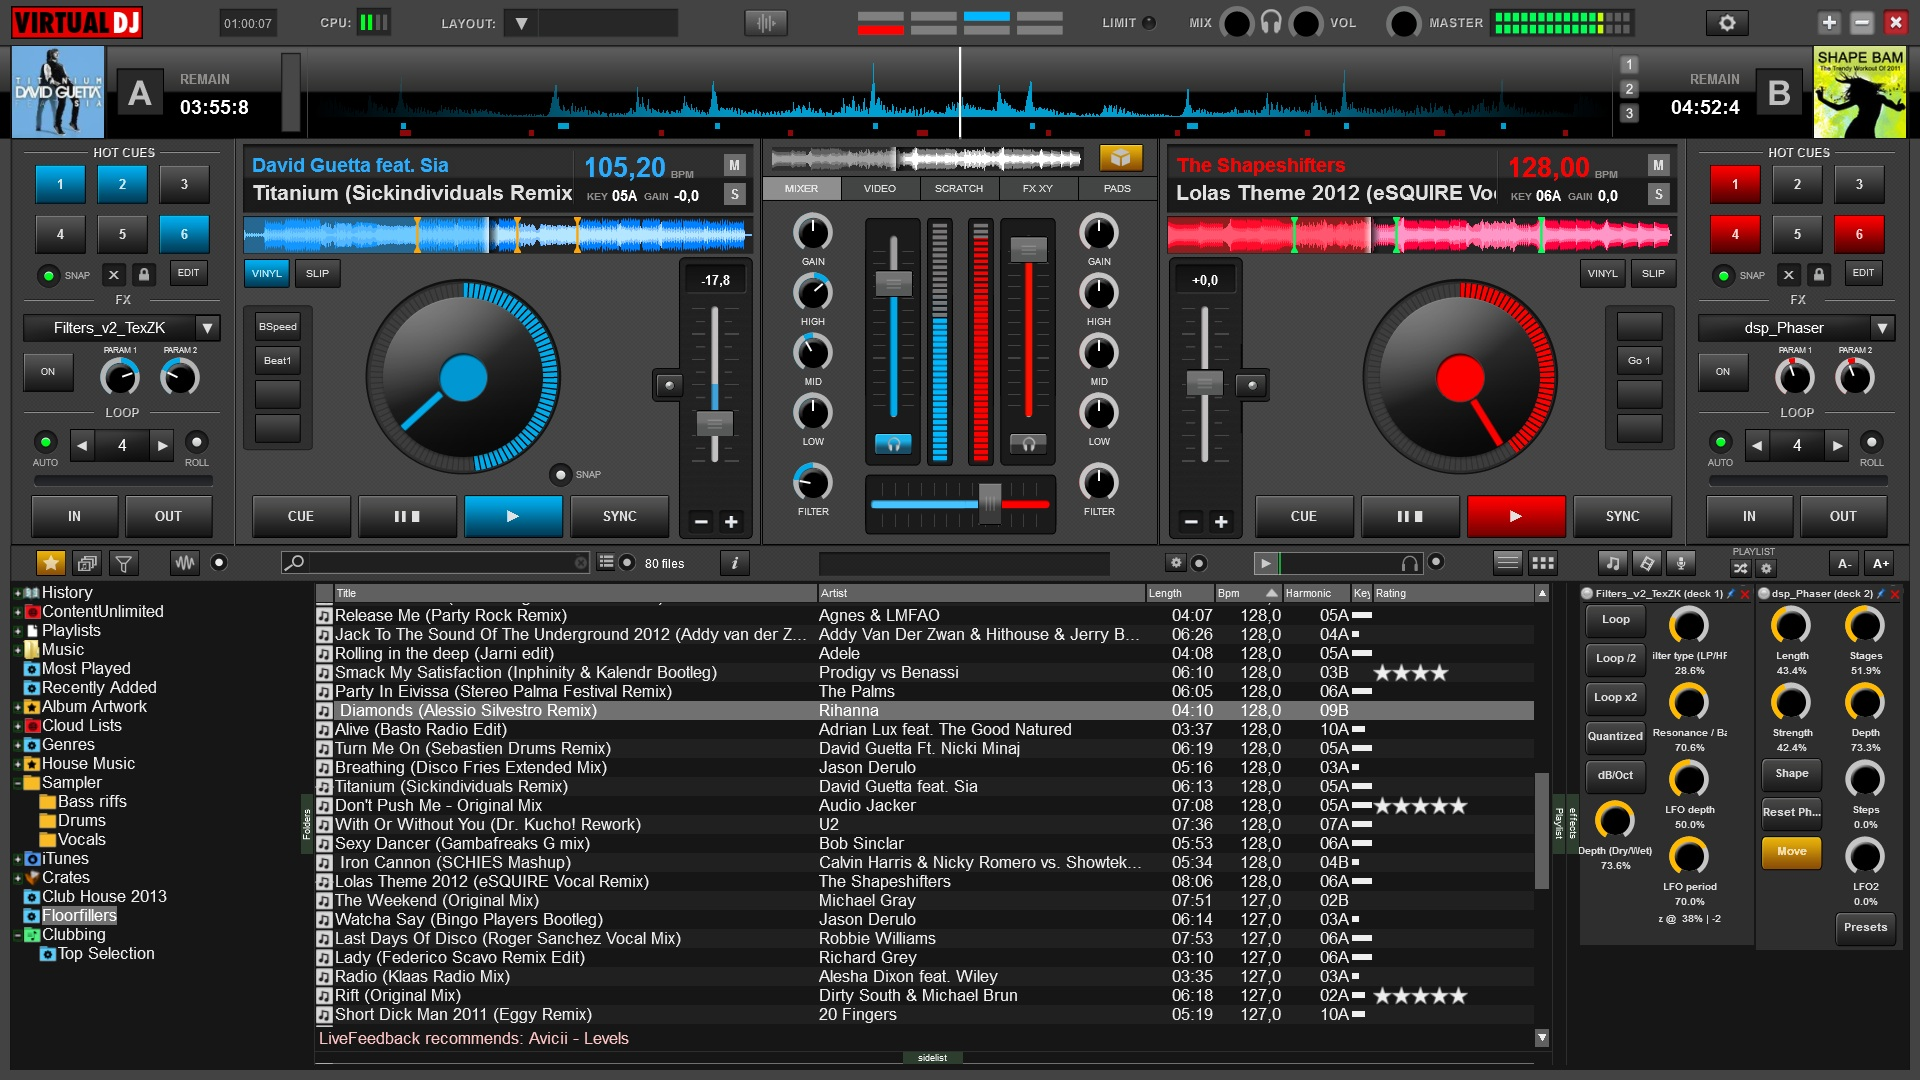 virtual dj 7 mac crack torrent